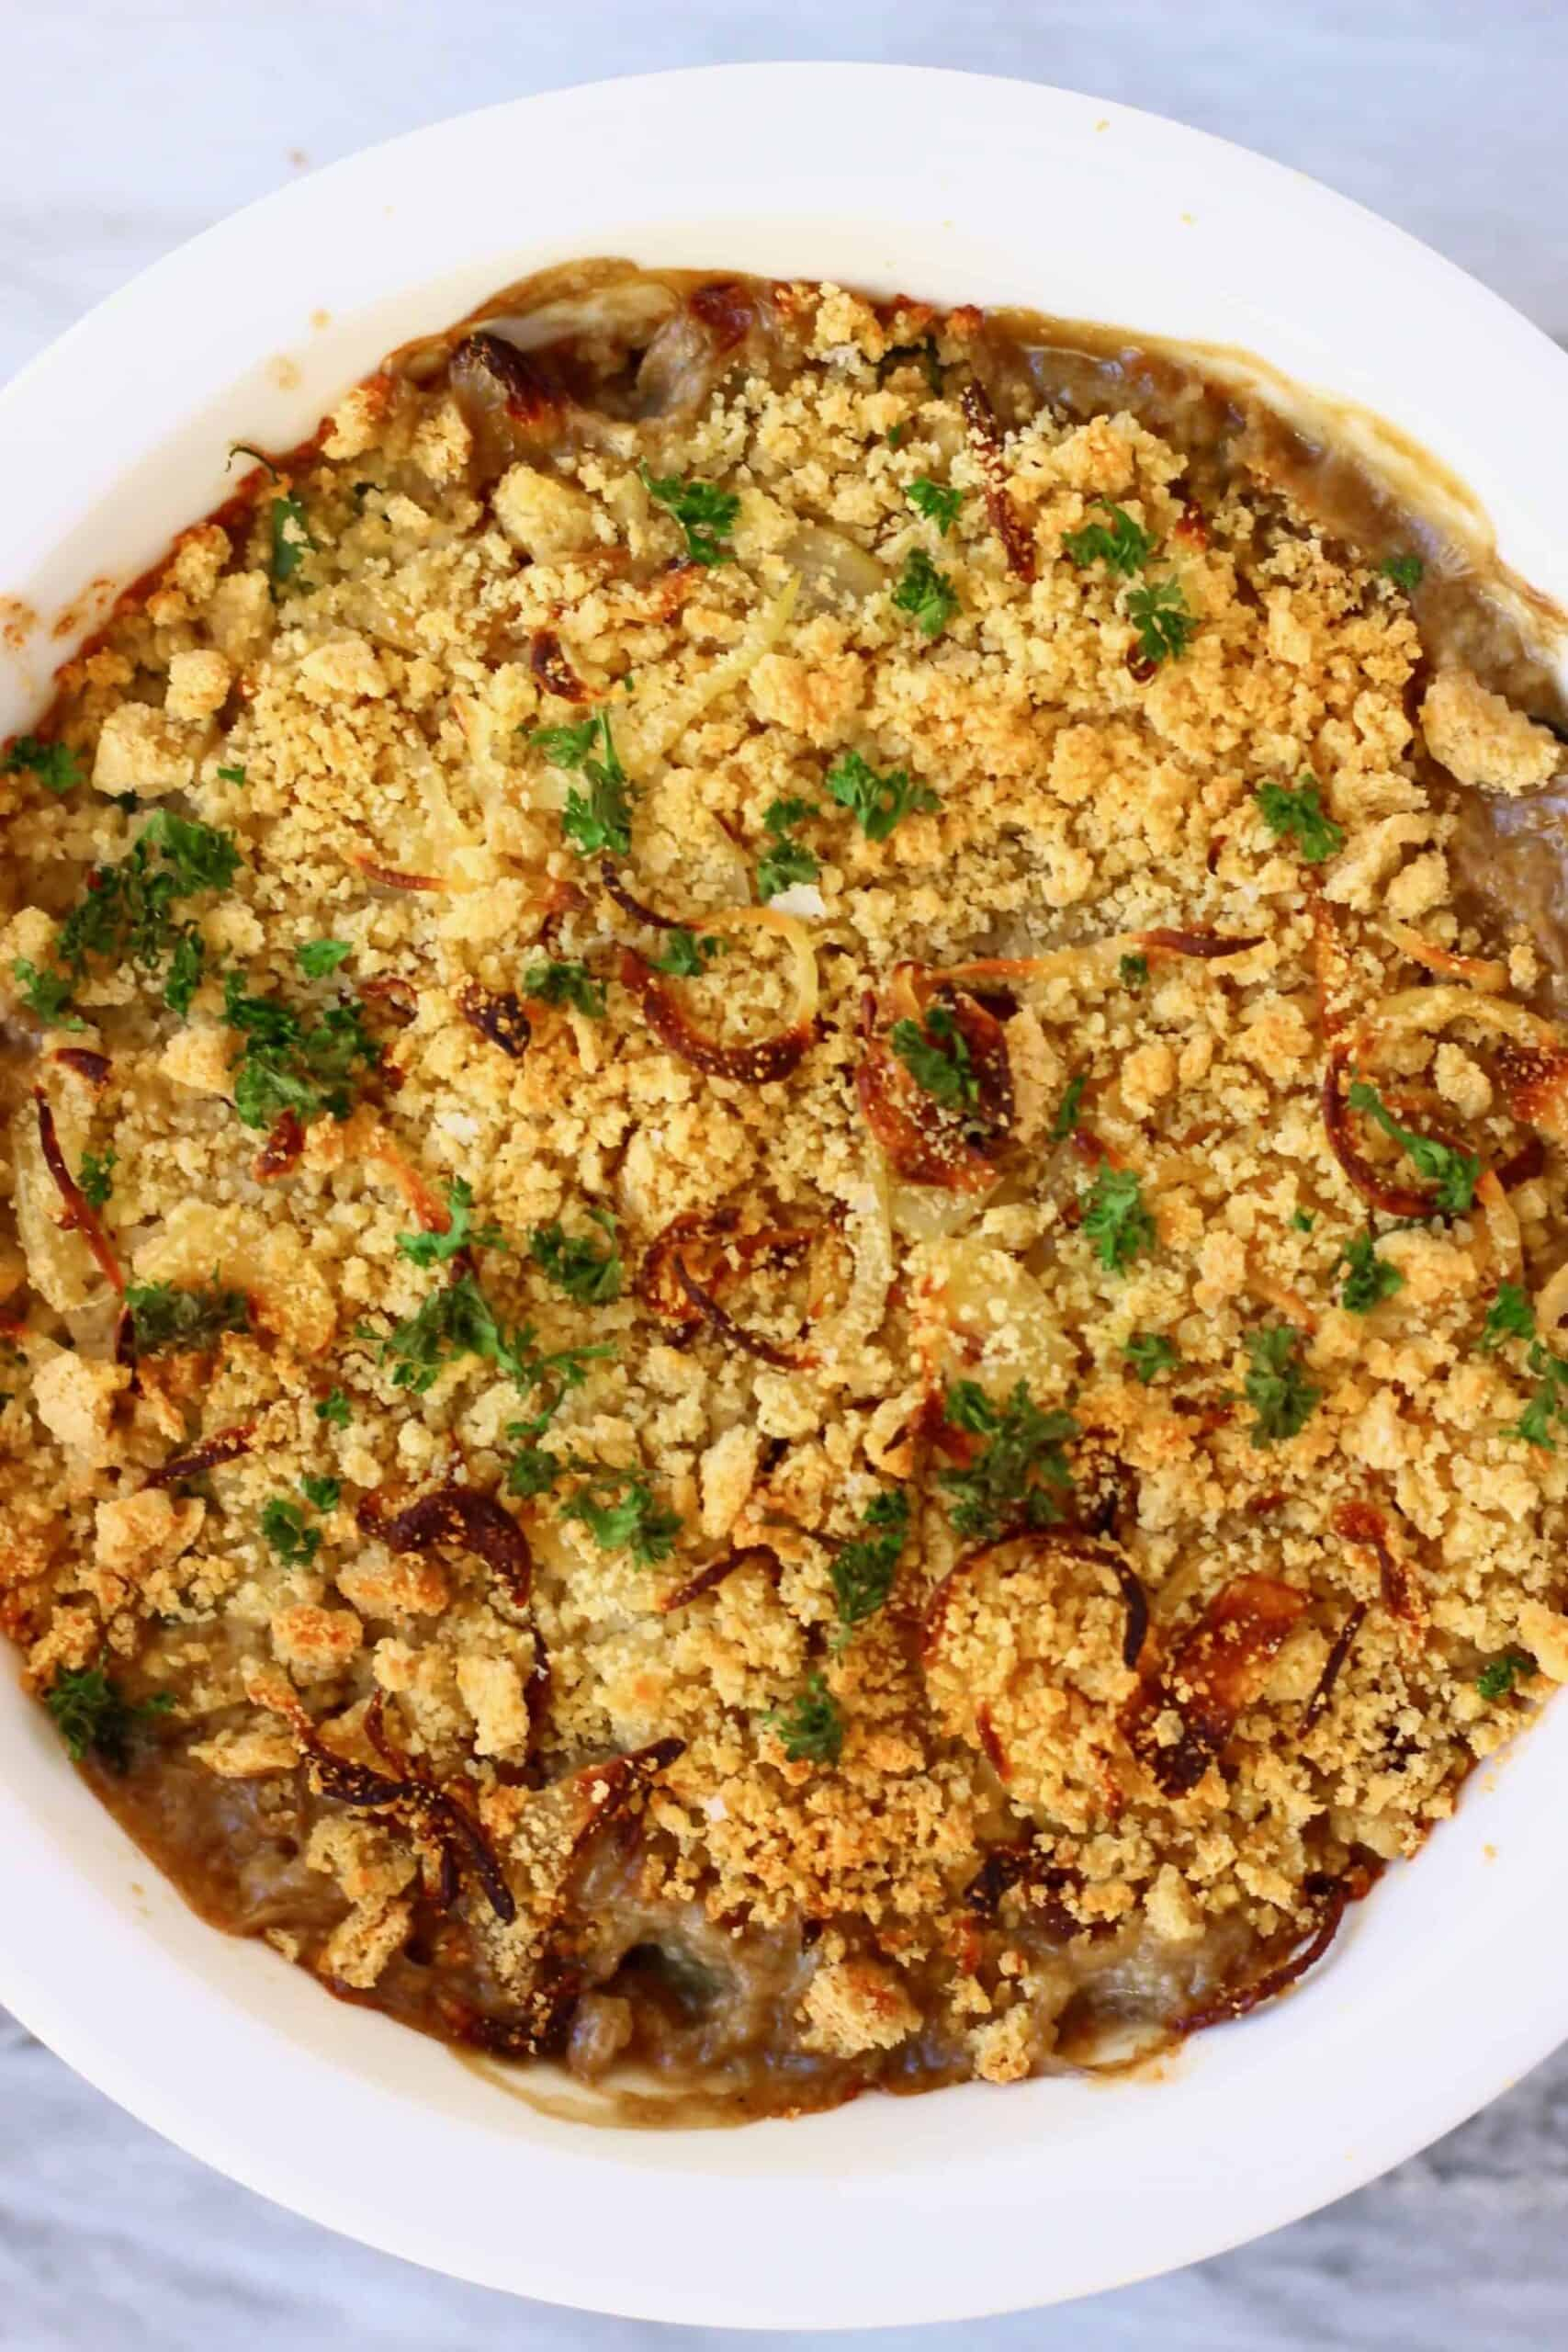 Vegan green bean casserole topped with golden brown breadcrumbs and green parsley in pie dish